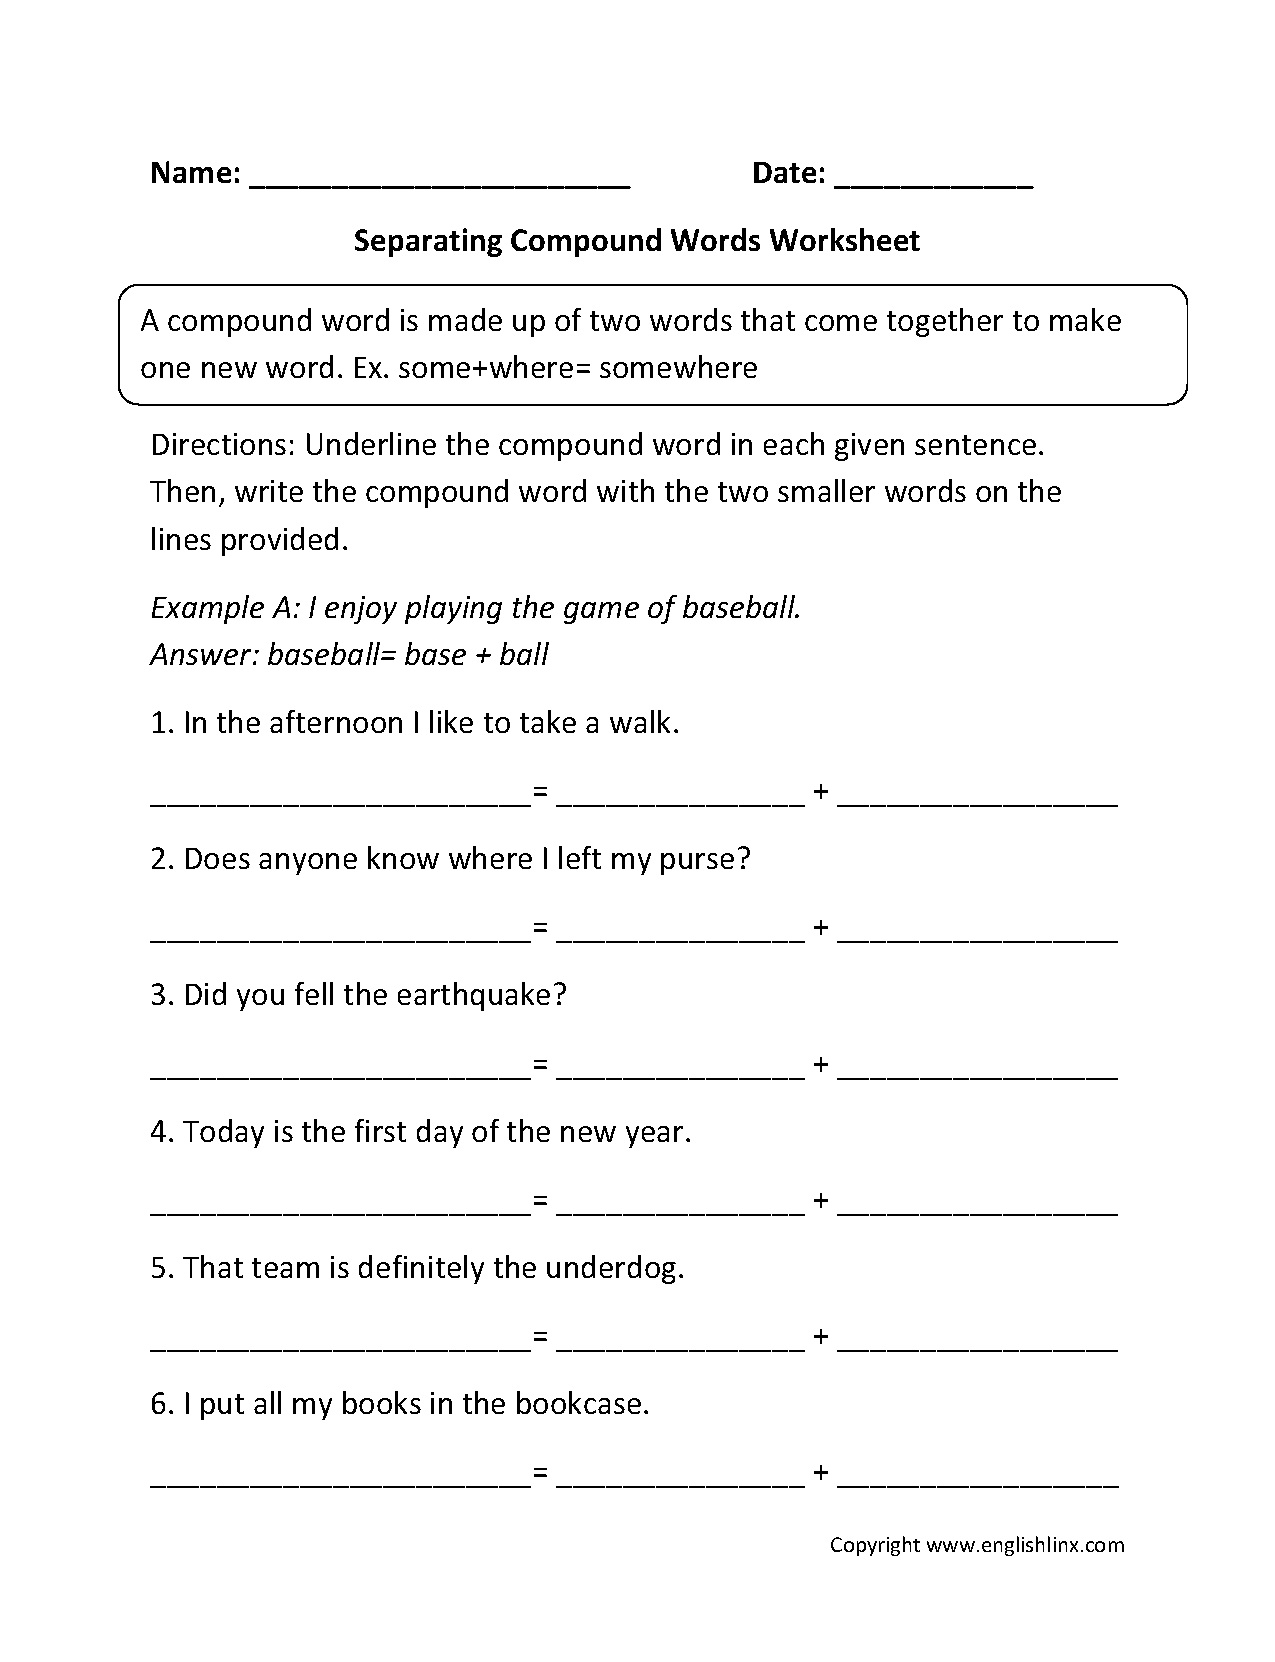 Separating Compound Words Worksheets